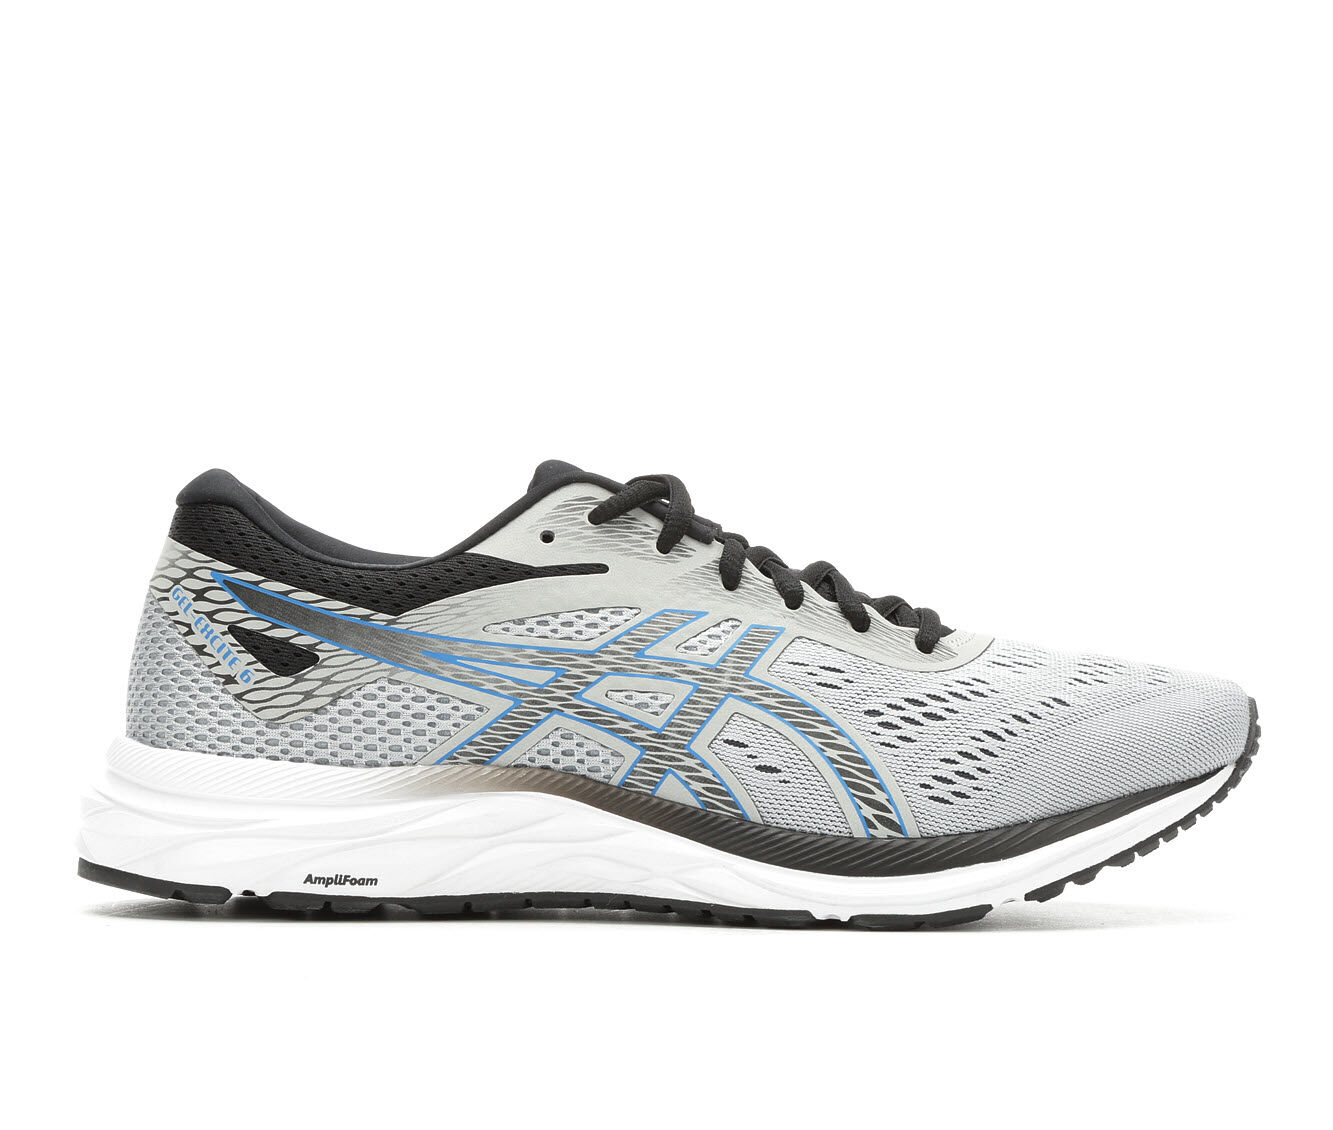 Men's ASICS Gel Excite 6 Running Shoes Gy/Bl/Bk/Wh